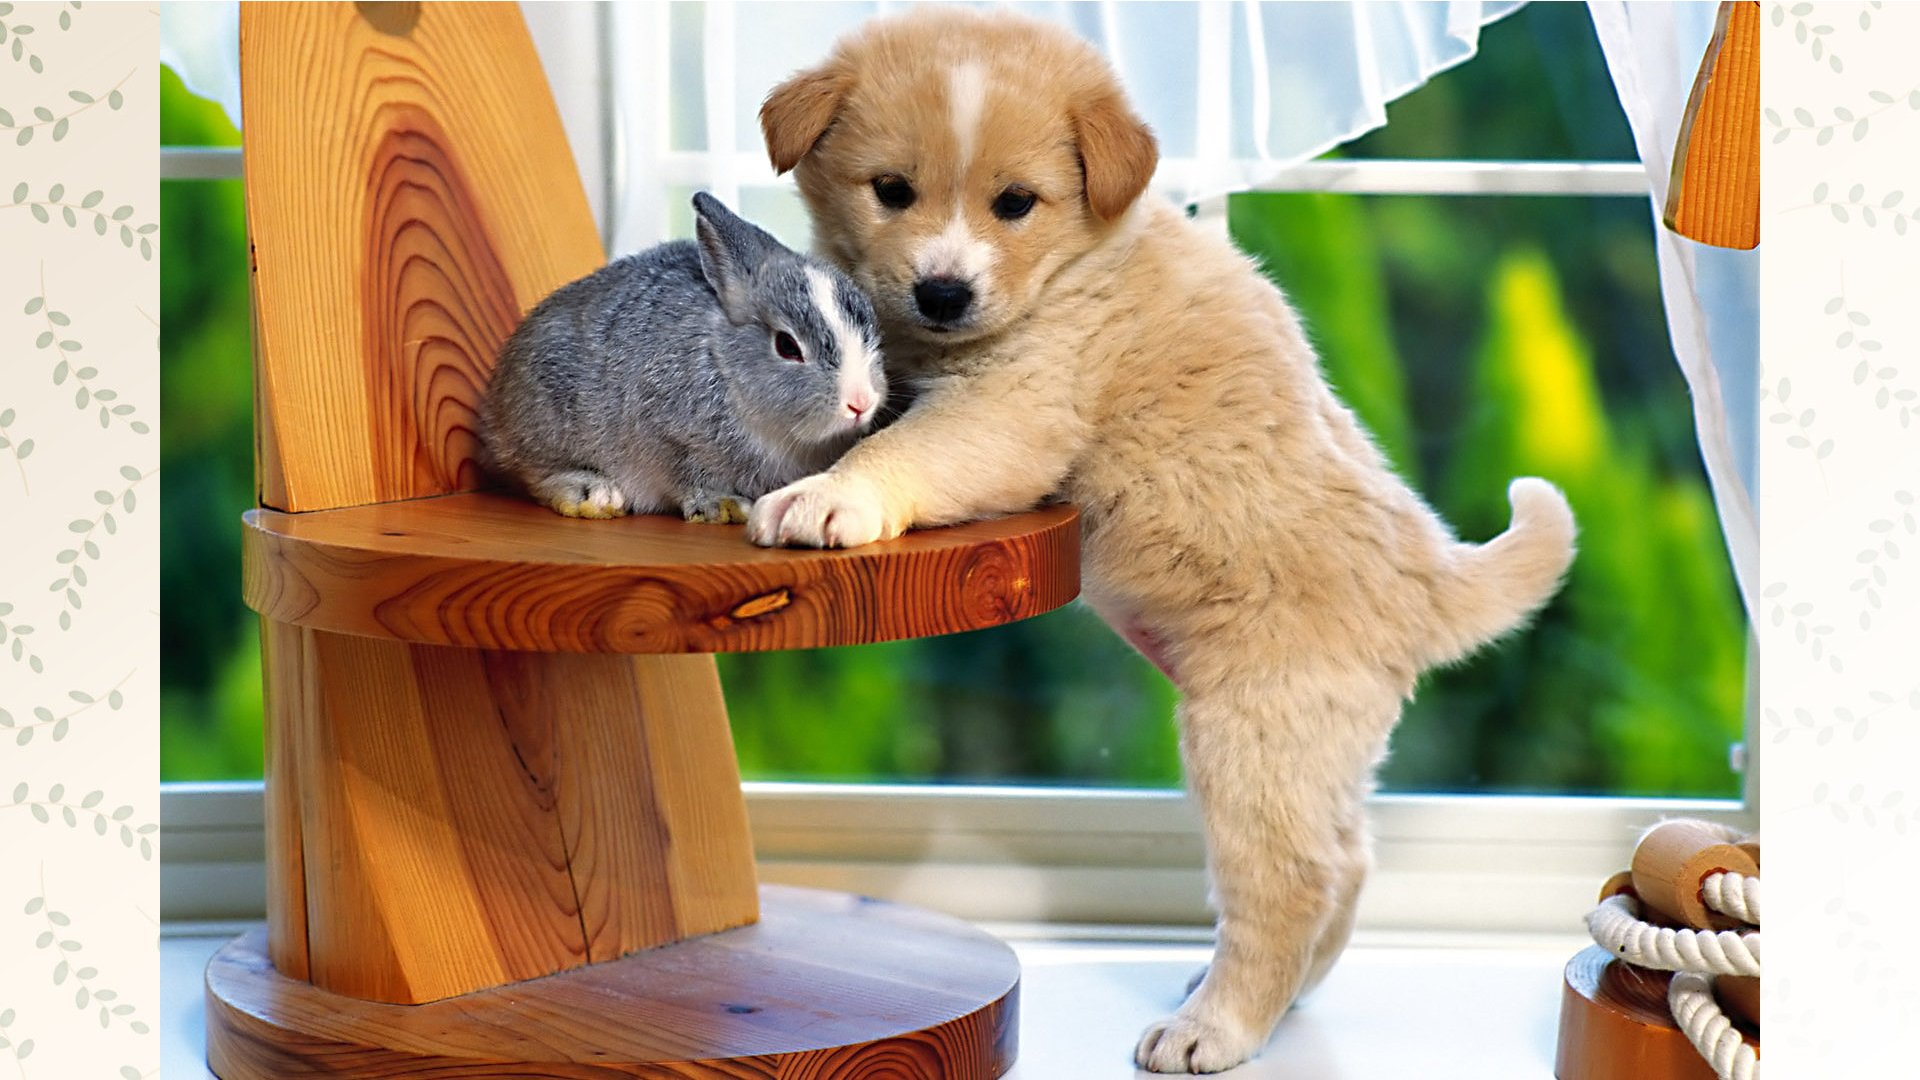 Bunny And Puppy Dog Full Hd Desktop Wallpapers 1080p Cute Dog Wallpapers